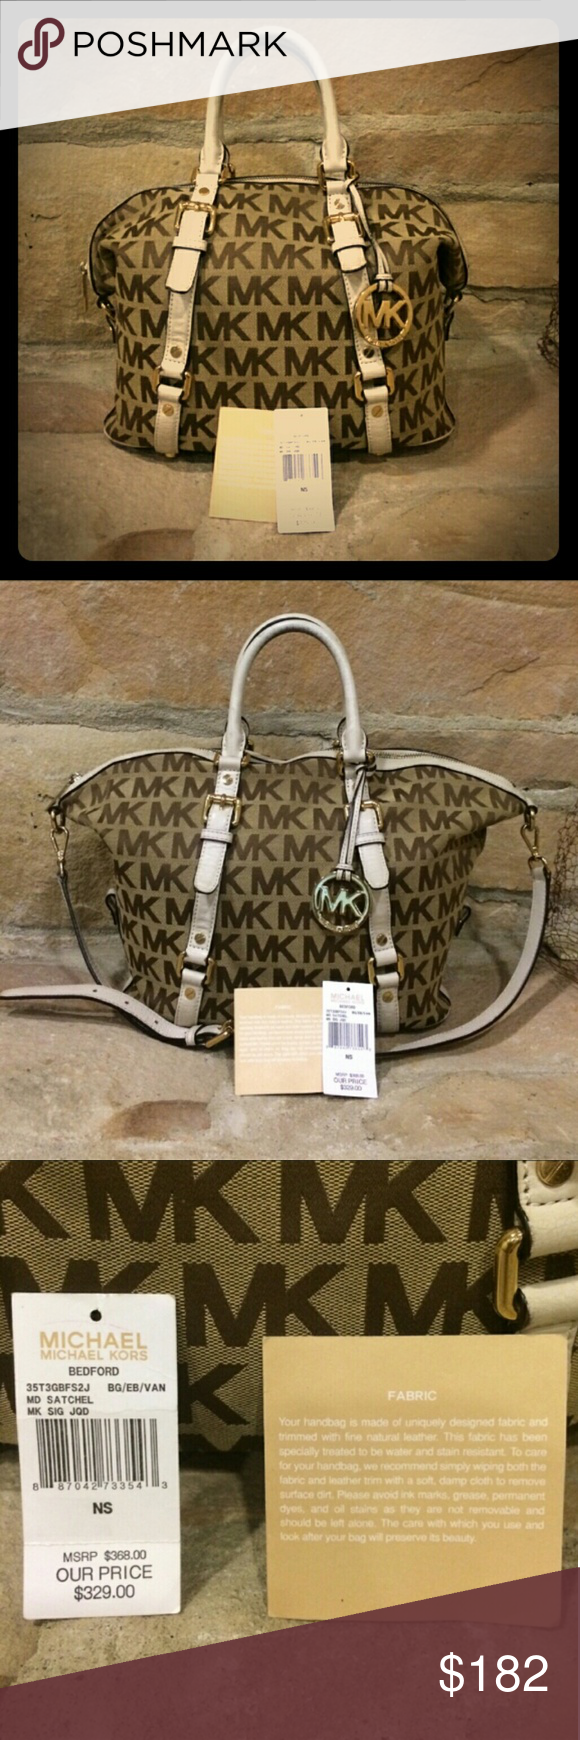 MICHAEL KORS Bedford Bag Michael Kors bag in great used condition! There is a small snag spot & arm straps have a little wear on them as shown in picture above! Still have the original tags! Offers welcome! MICHAEL Michael Kors Bags